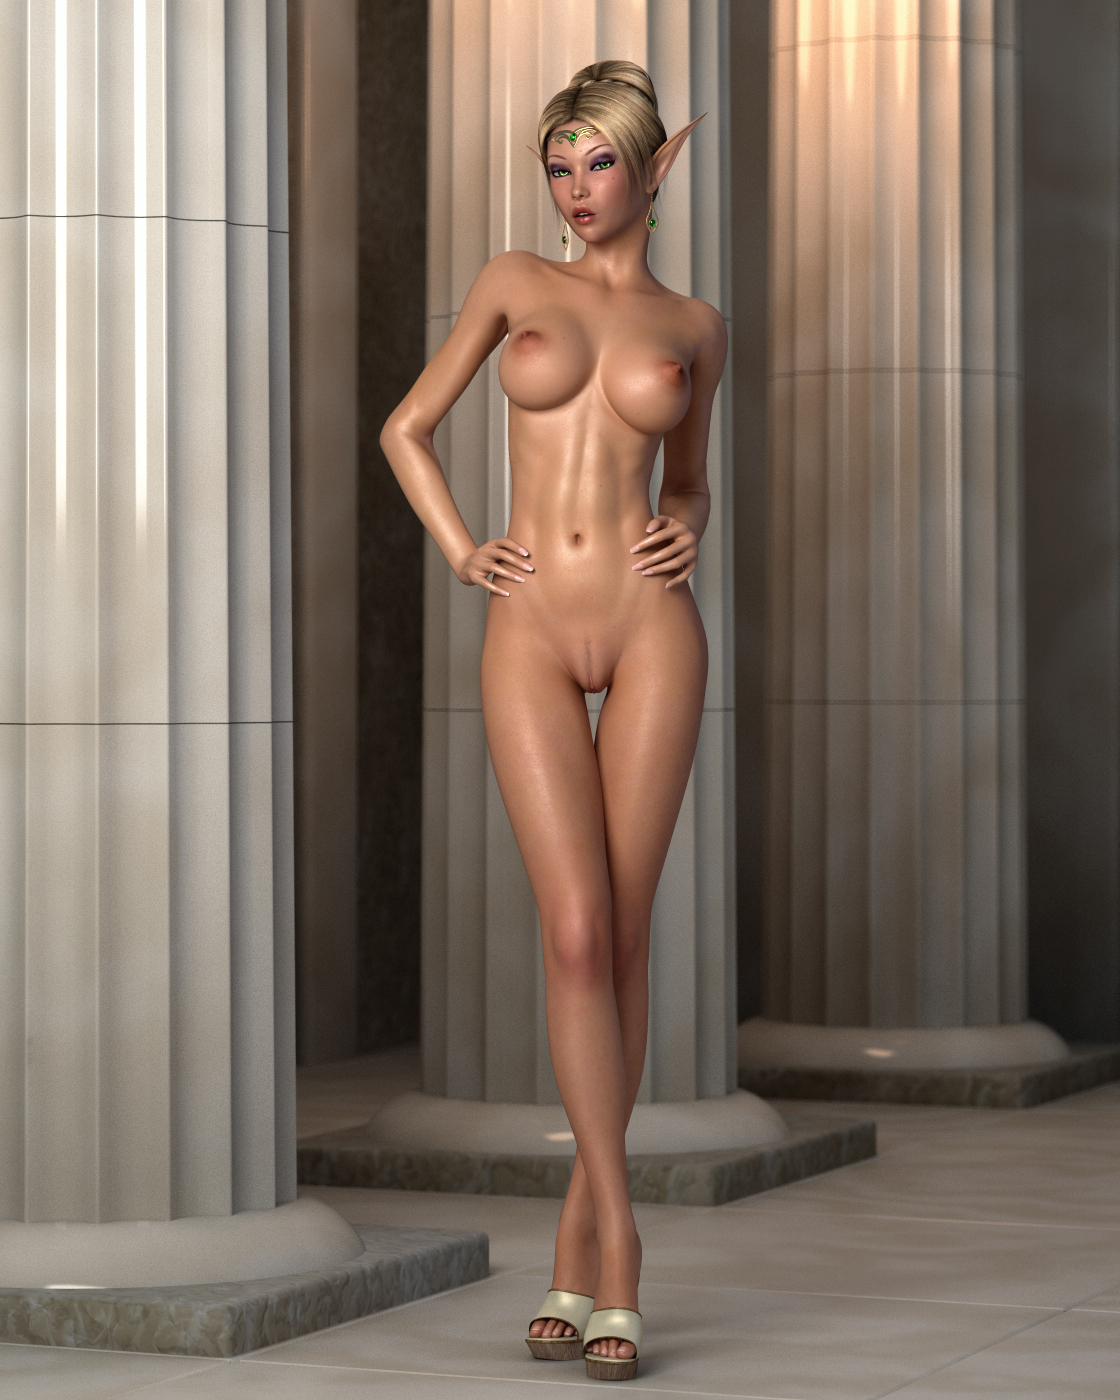 Naked 3d elf girl pictures nude comic